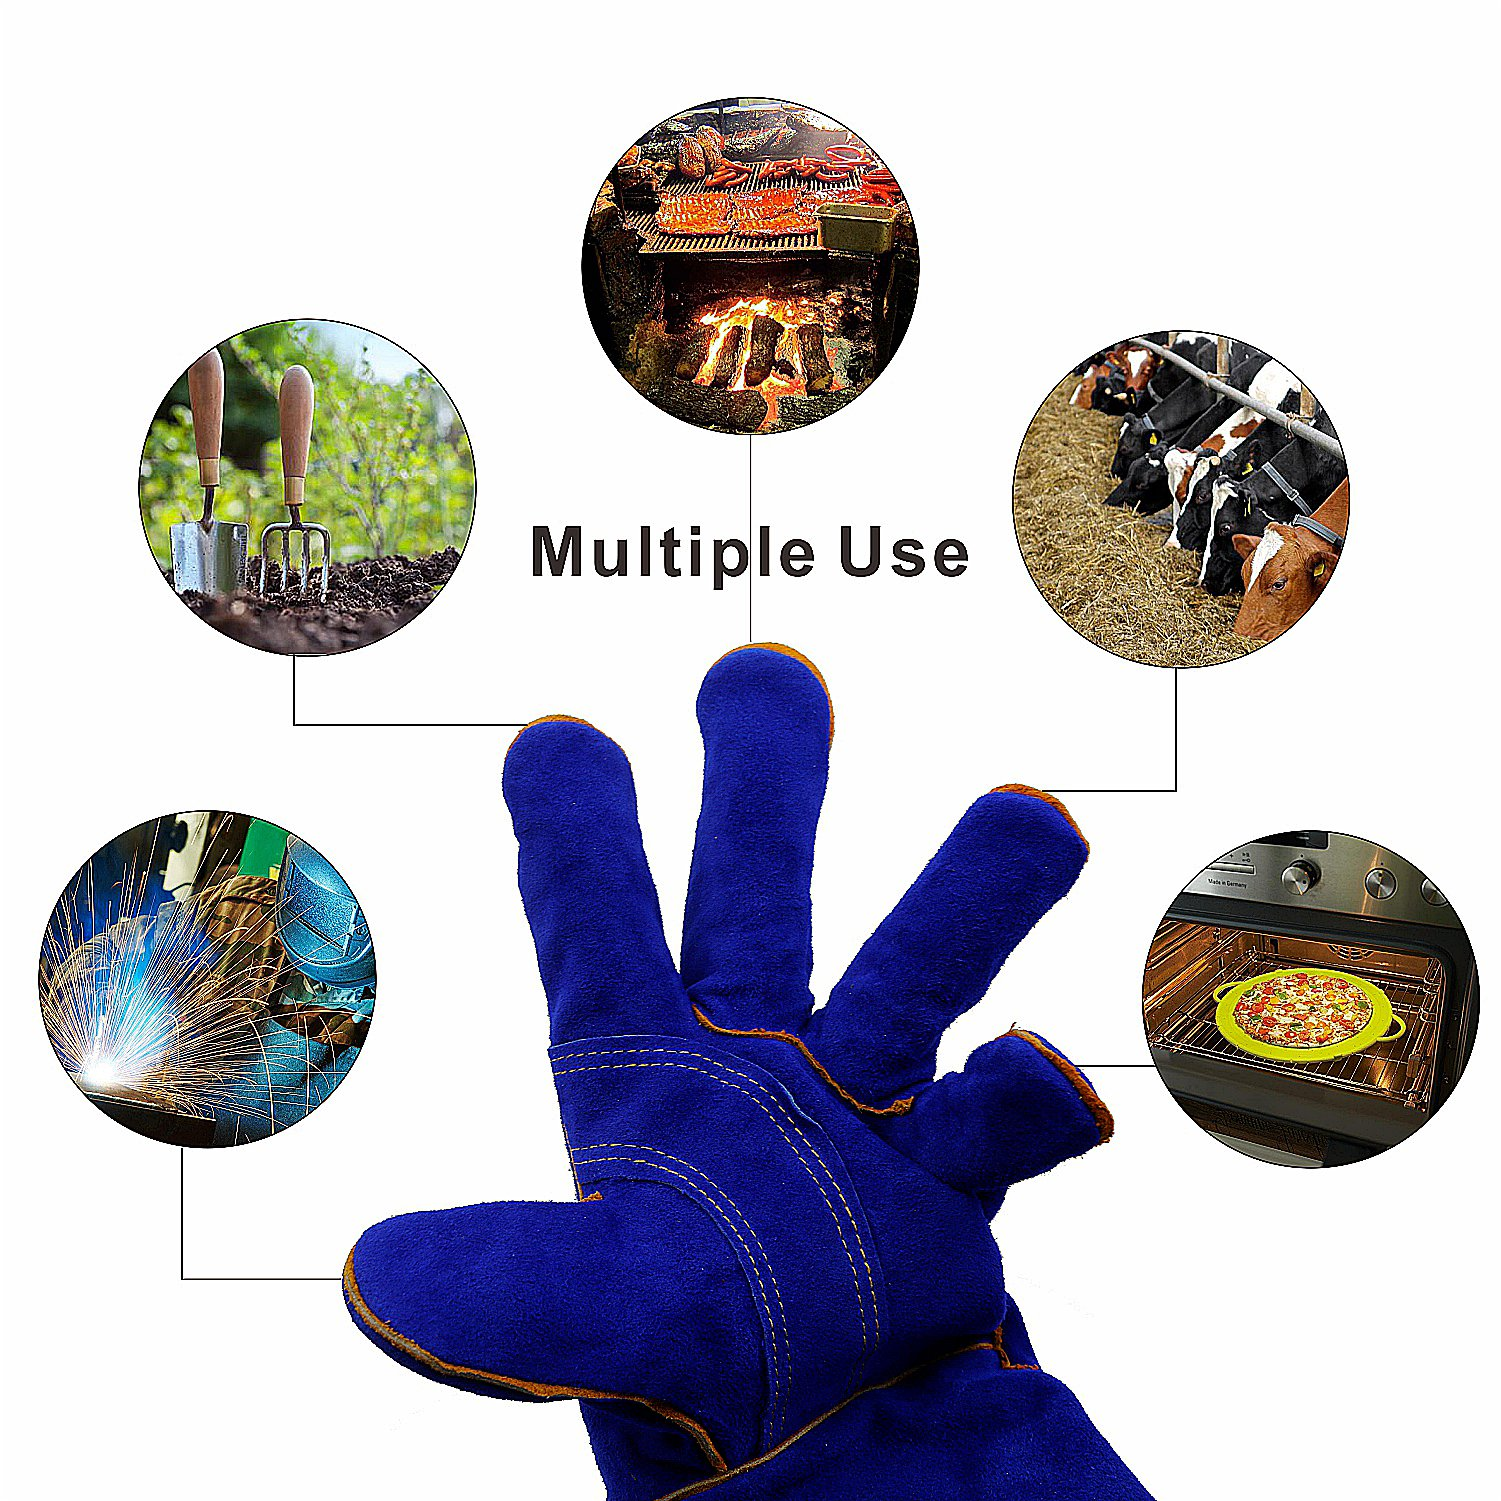 KIM YUAN Leather Welding Gloves - Heat/Fire Resistant, Perfect for Gardening/Oven/Grill/Mig/Fireplace/Stove/Pot Holder/ Tig Welder/Animal Handling/BBQ - 14inches by KIM YUAN (Image #7)